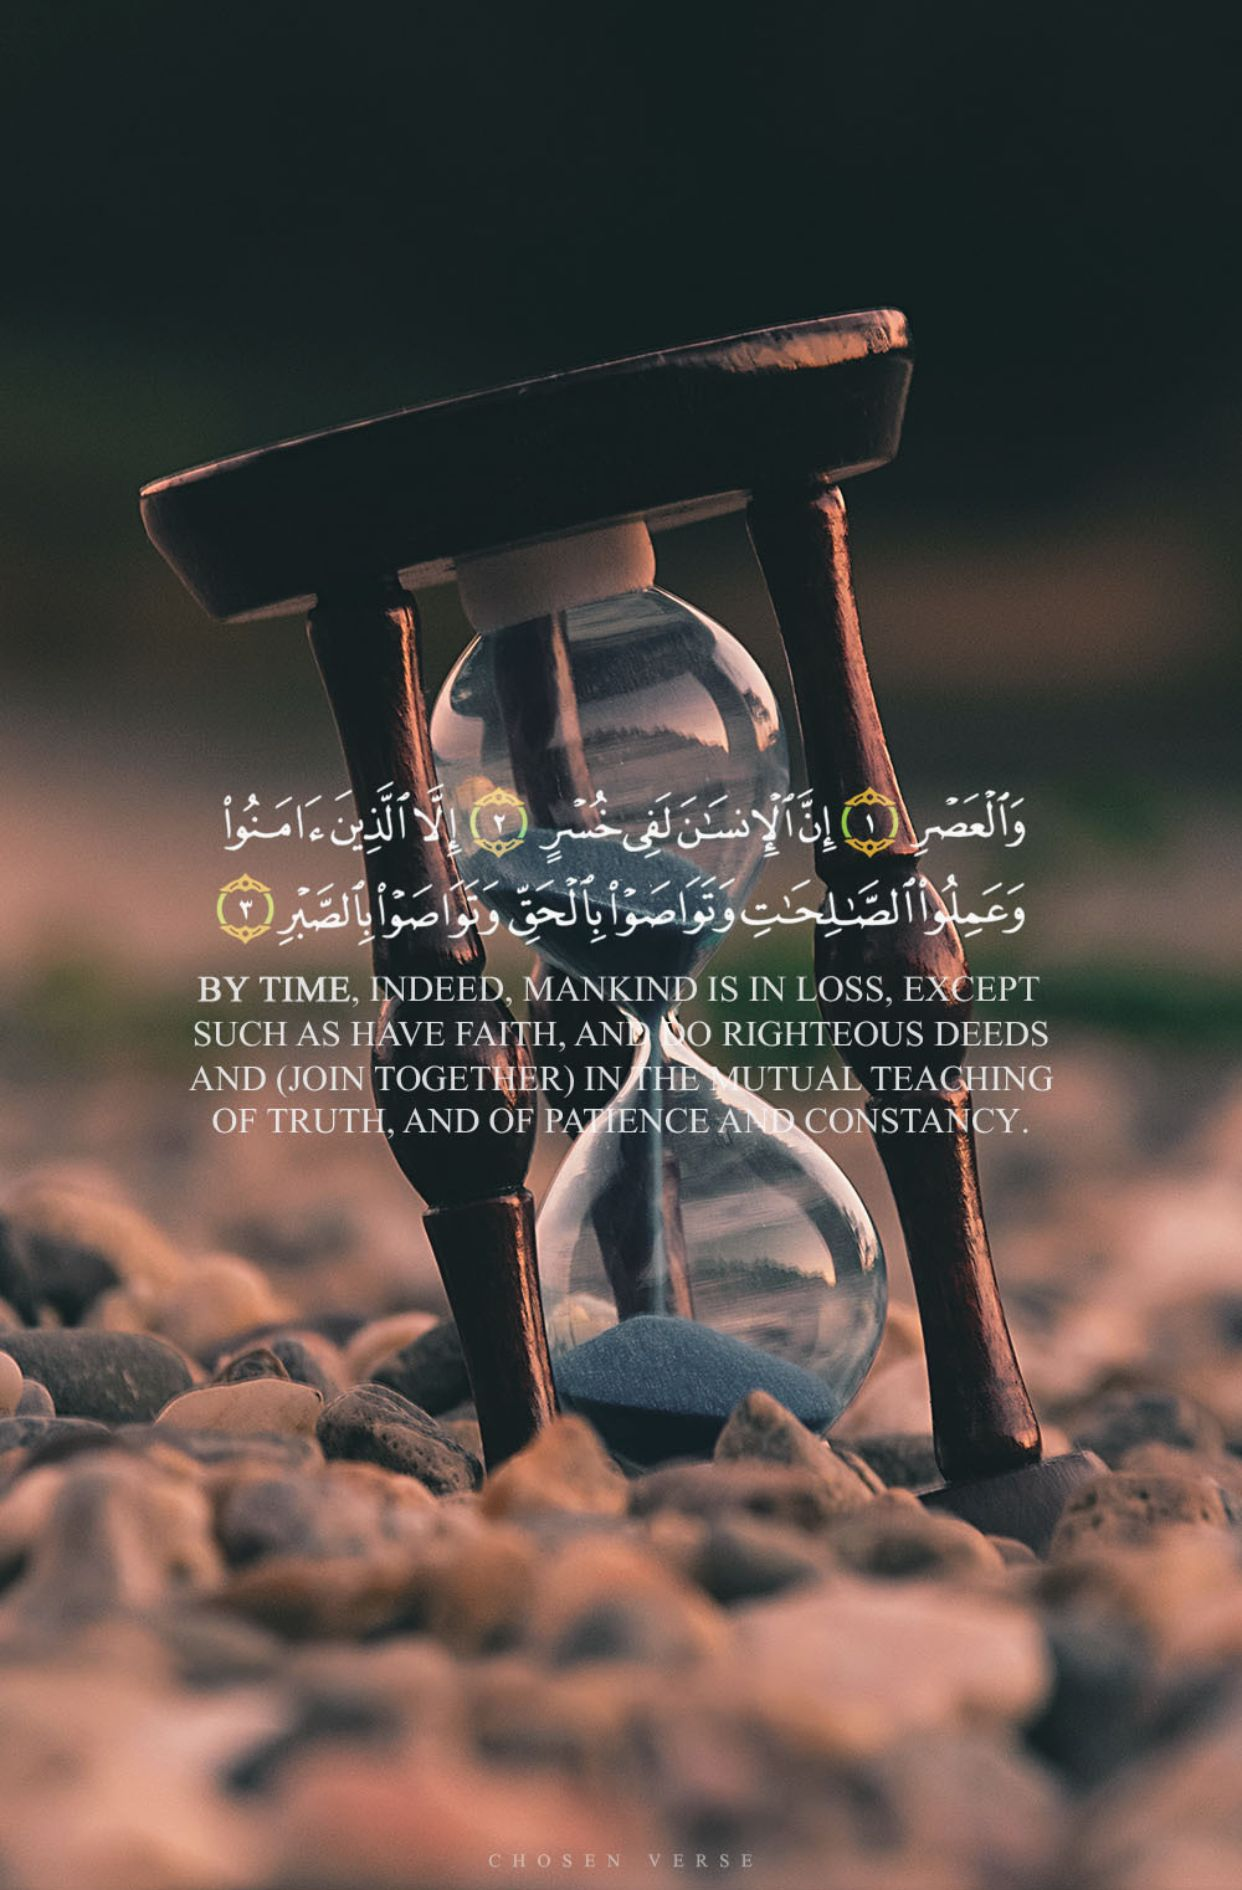 Pin By Multiplayer On Quran Verses Islamic Quotes Islamic Quotes Quran Quran Quotes Verses Quran Book